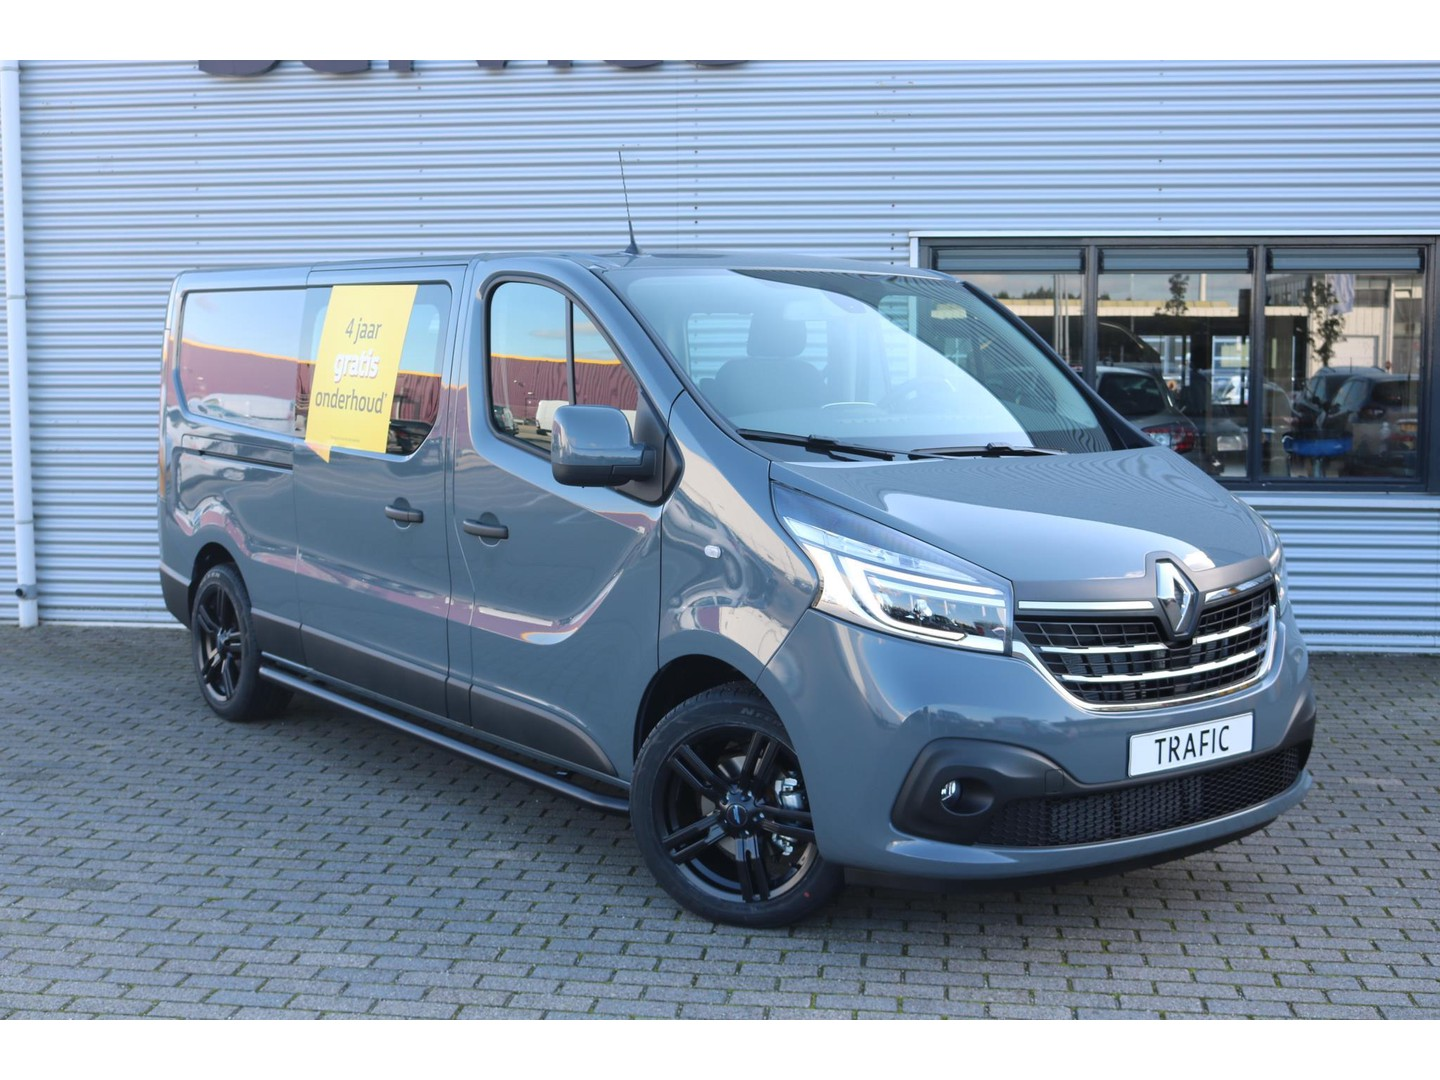 Renault Trafic 2.0 dci 170 edc automaat t29 l2h1 dc luxe